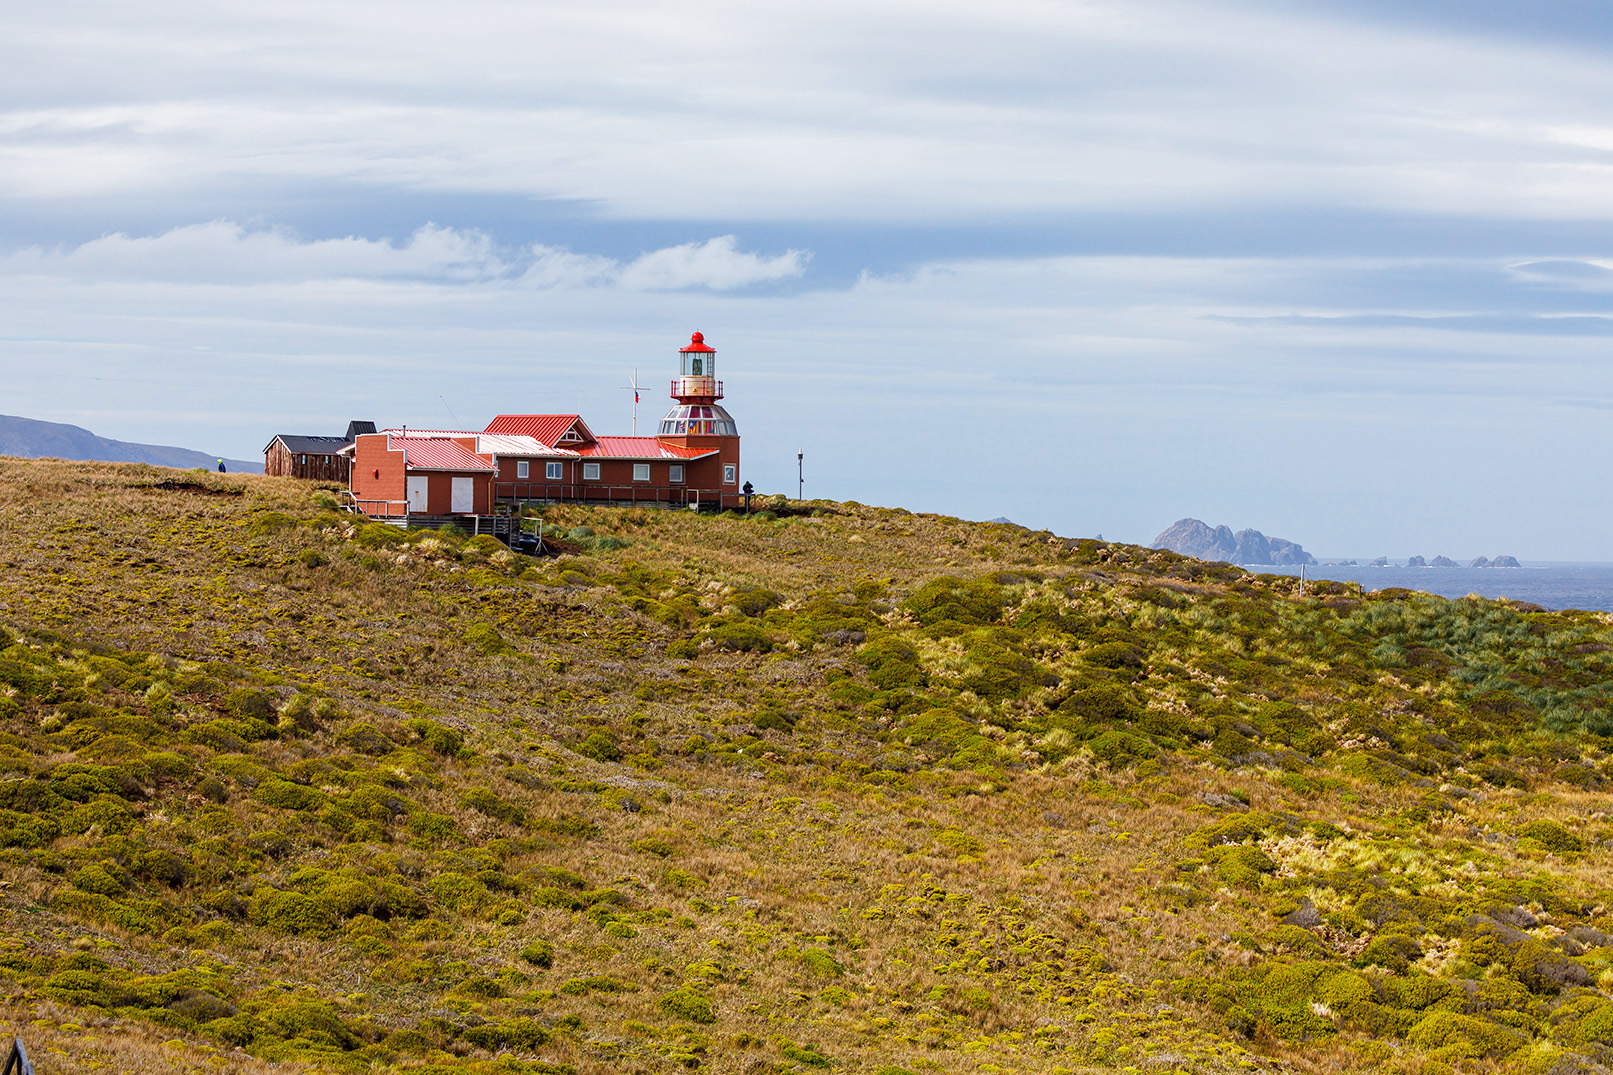 The panoramic views alone are worth the trip to Cape Horn